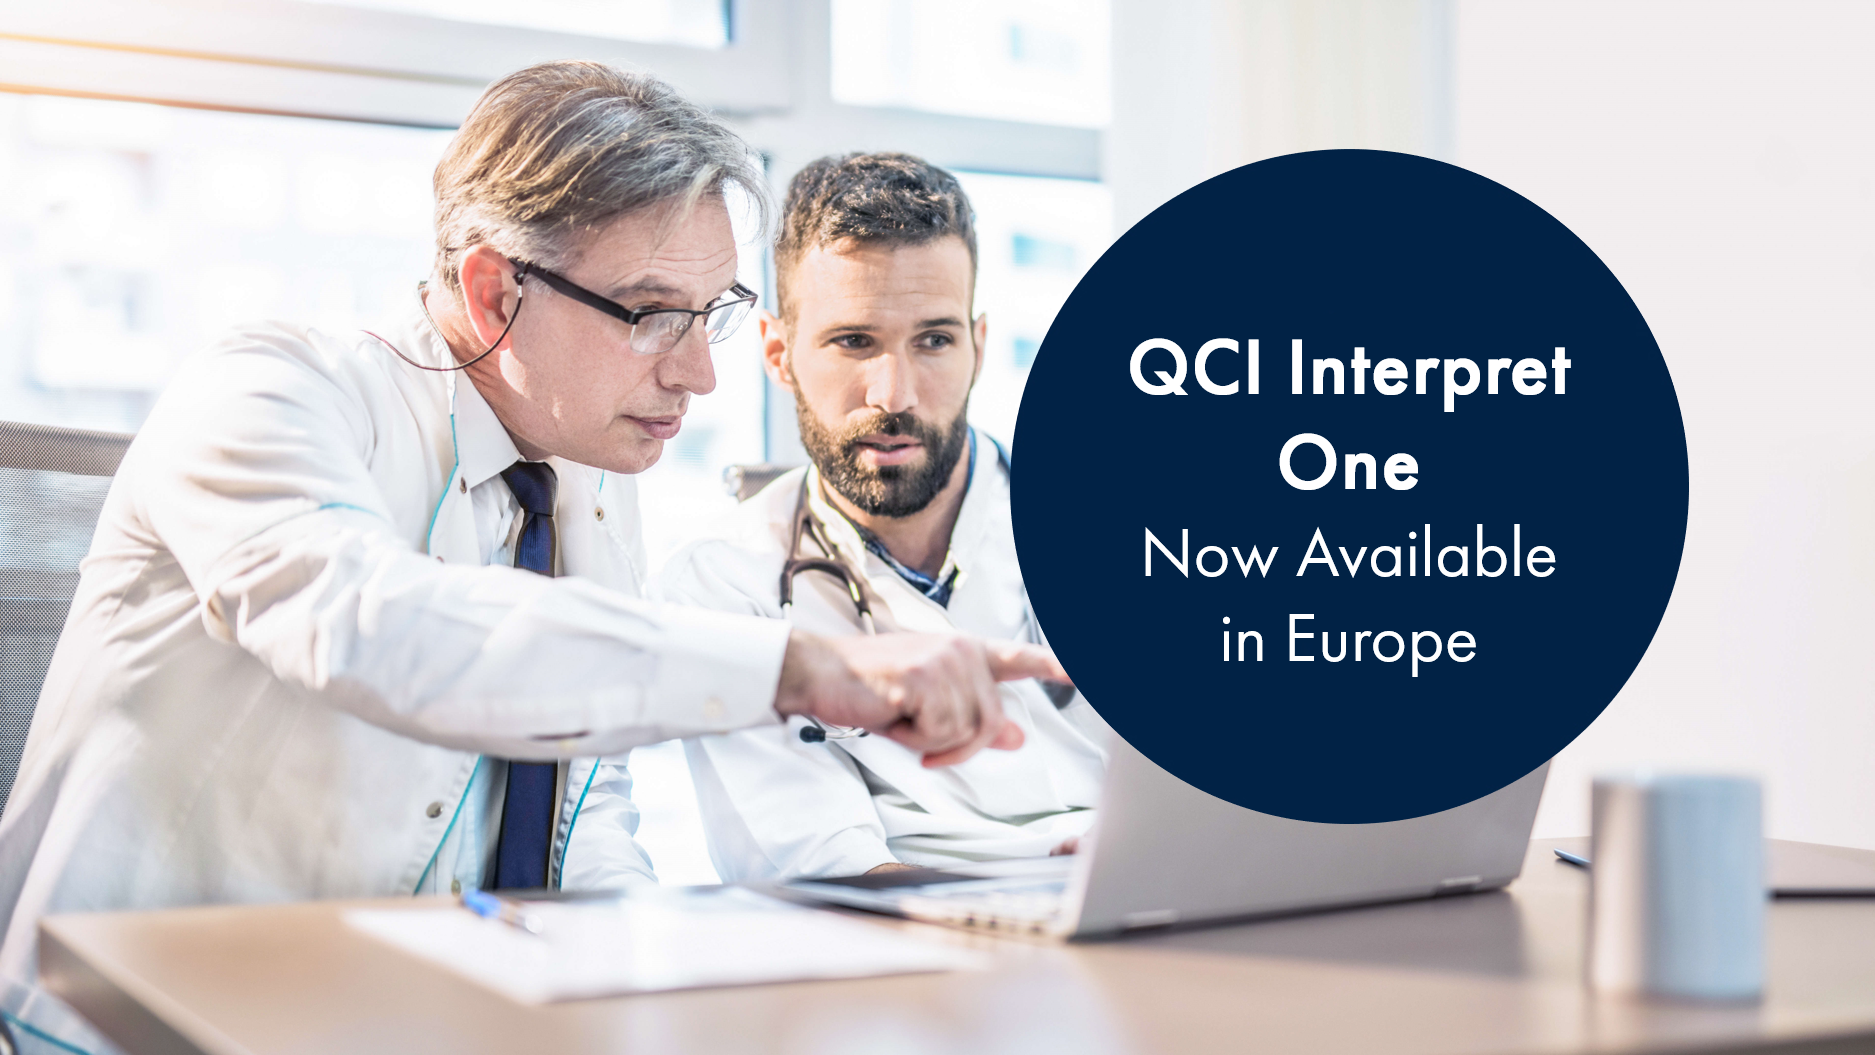 QCI Interpret One is now available in Europe